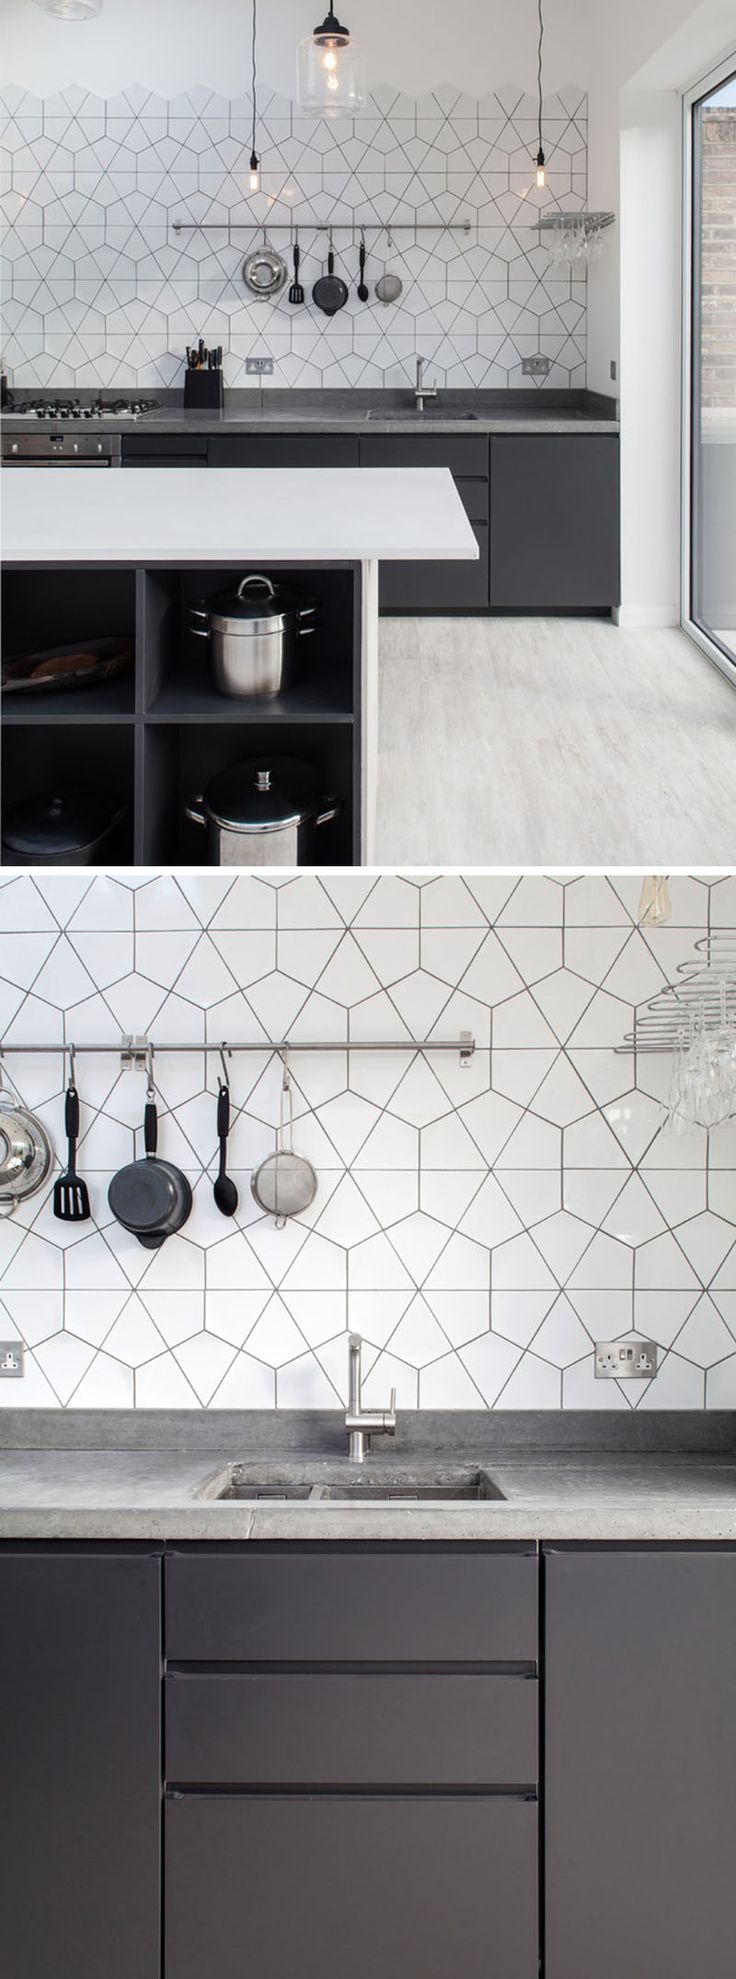 best 20+ geometric tiles ideas on pinterest | modern kitchen